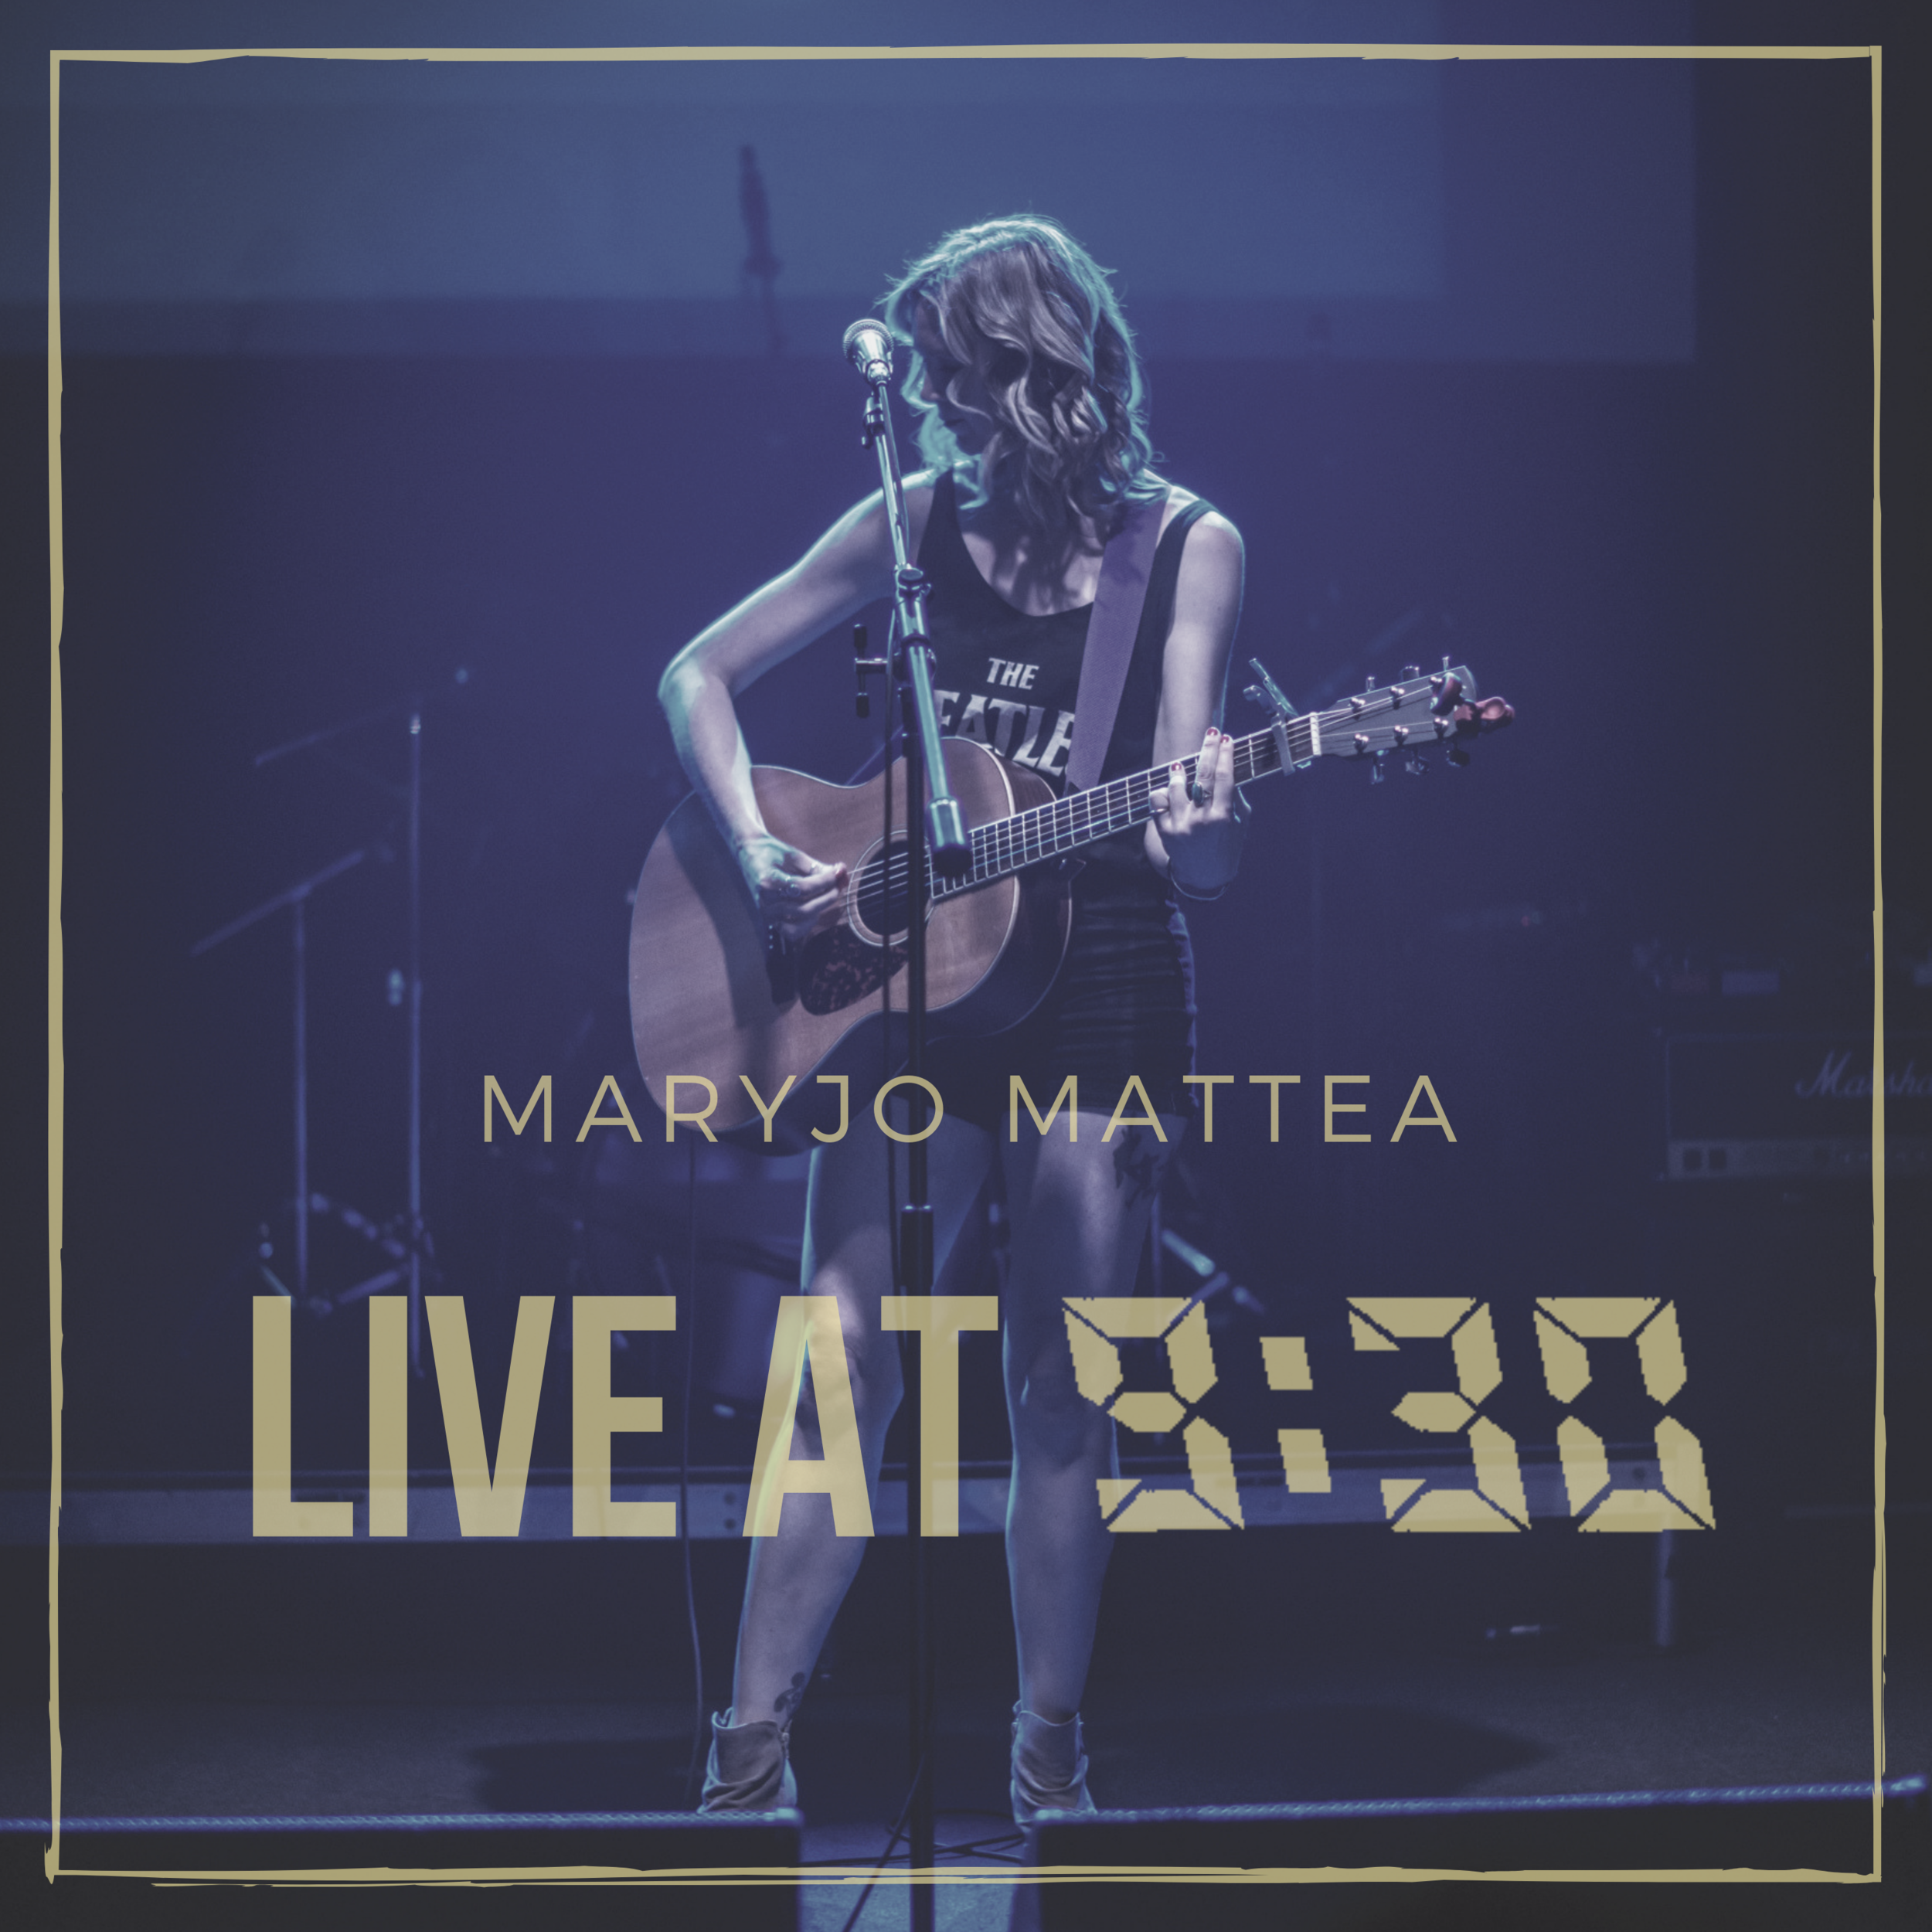 Live at 930 cover.png